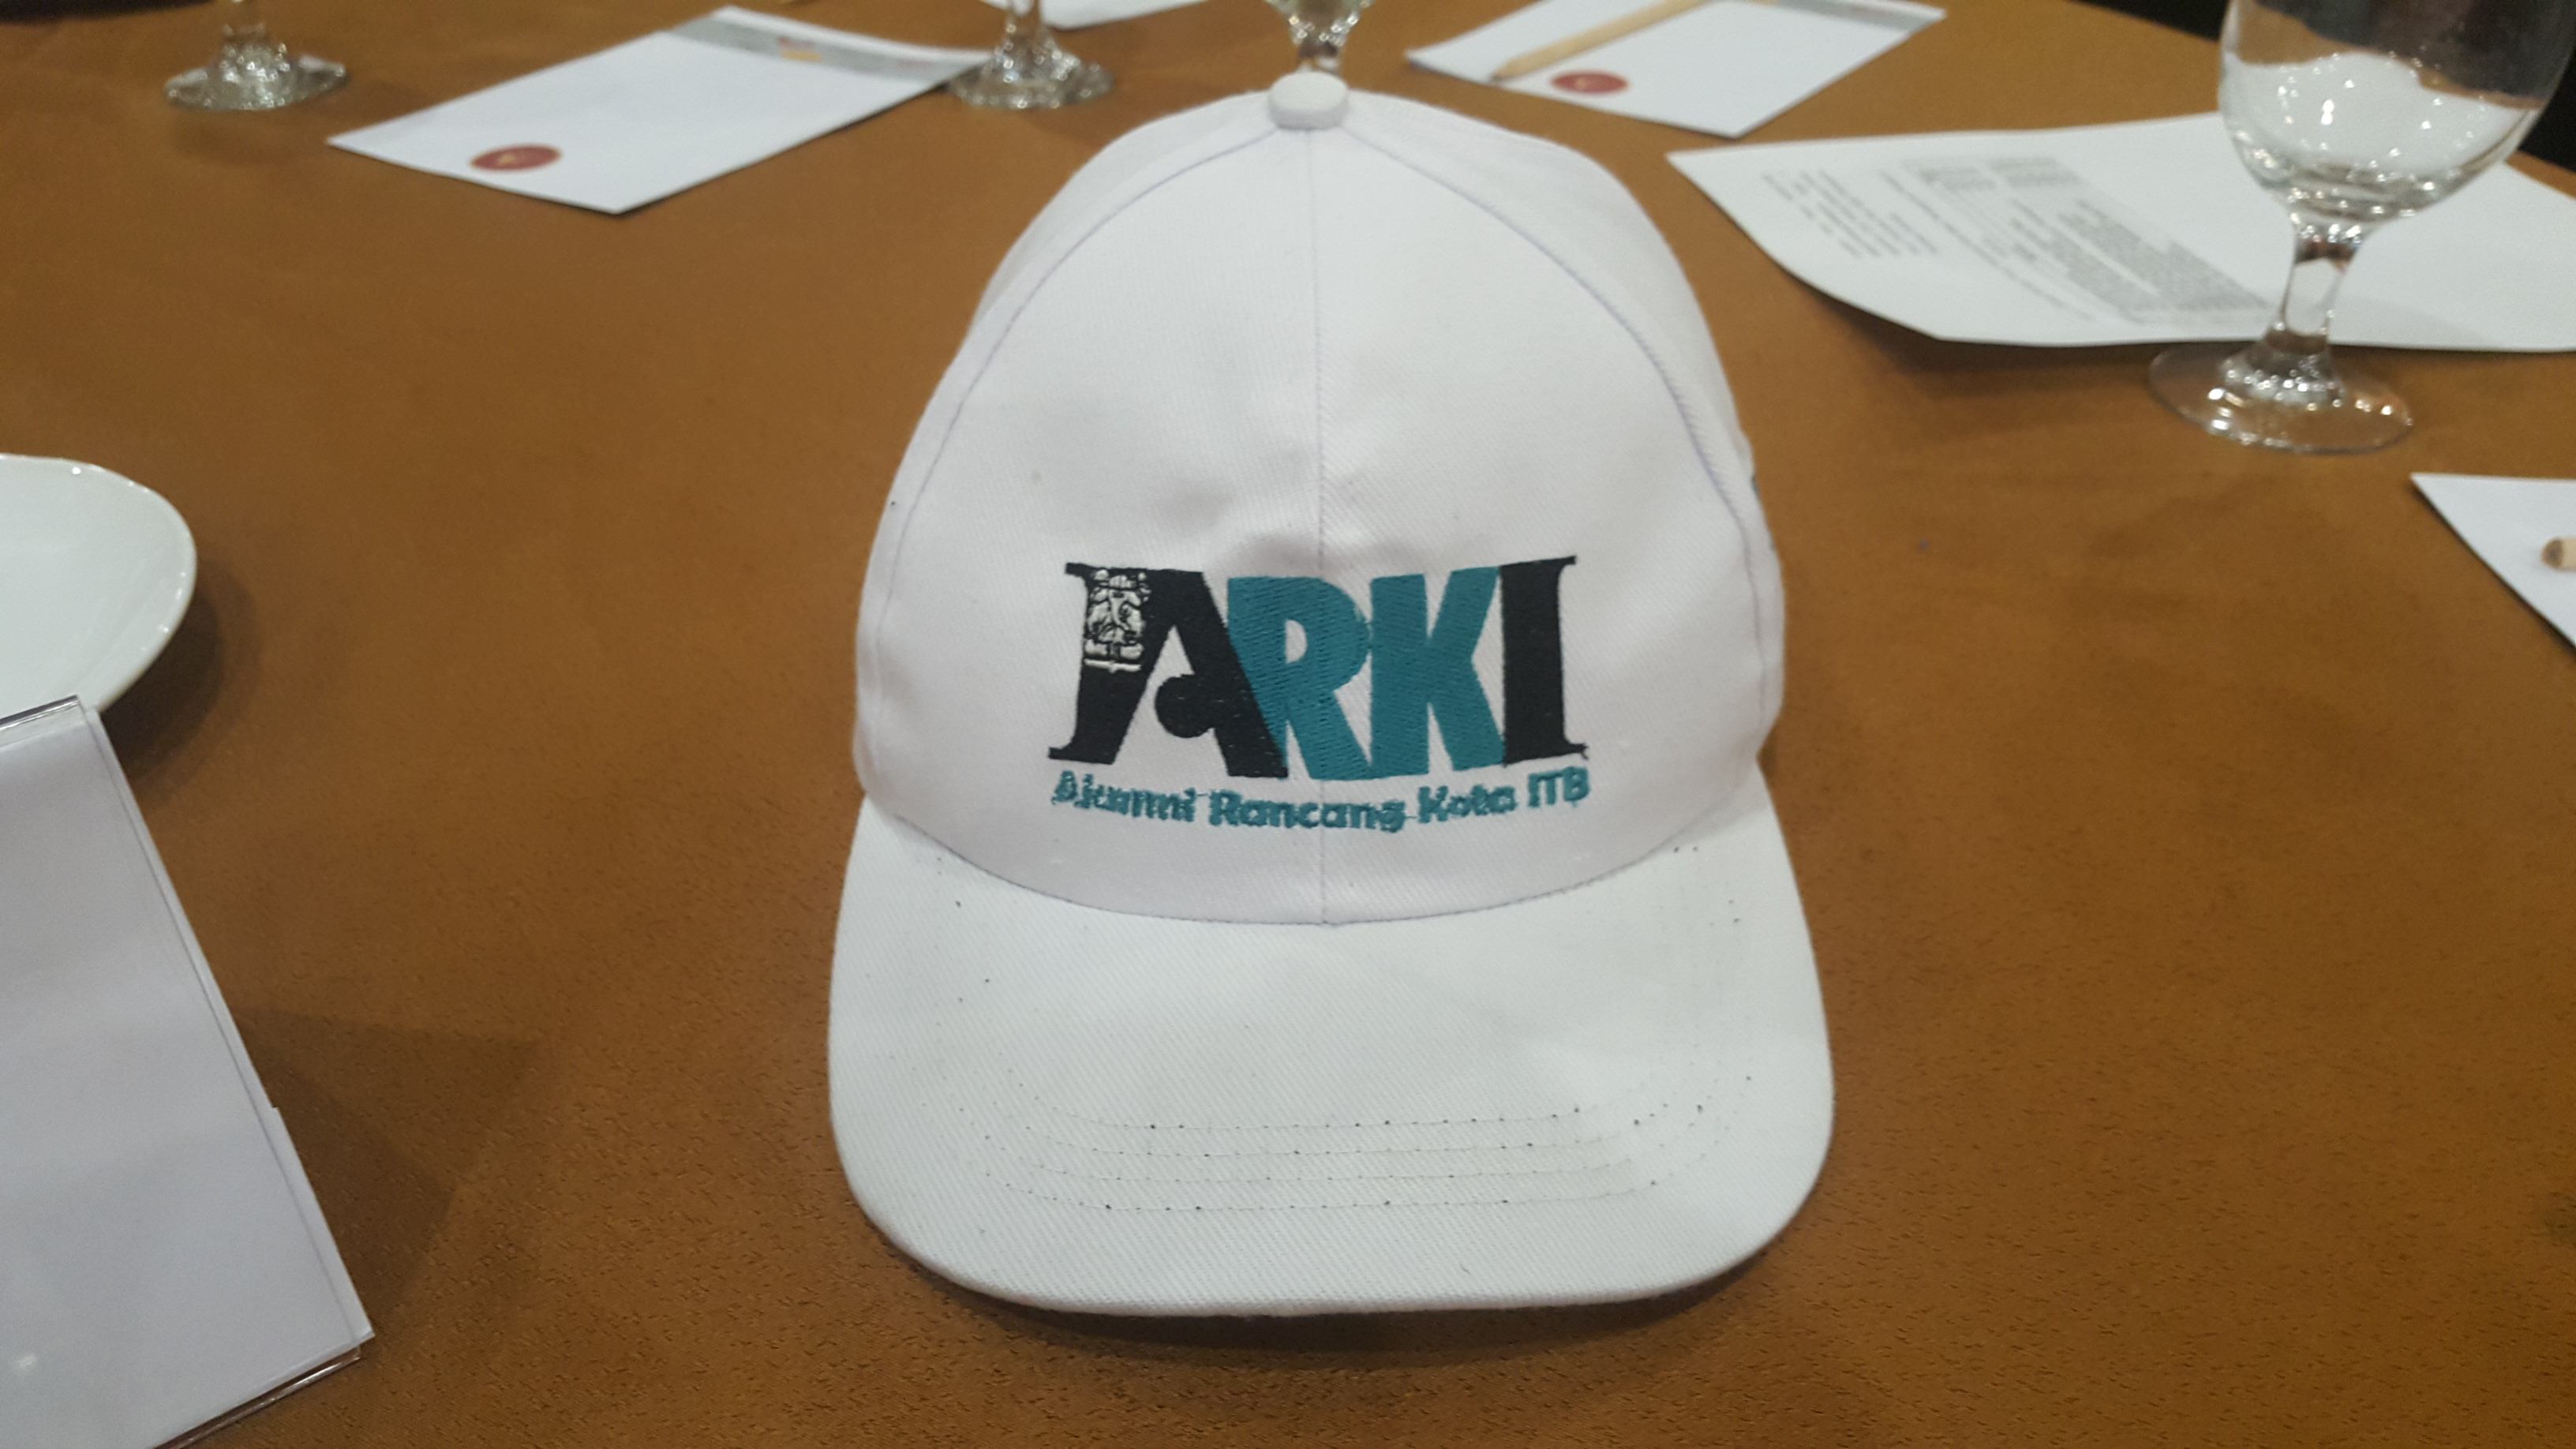 ARKI CONGRESS